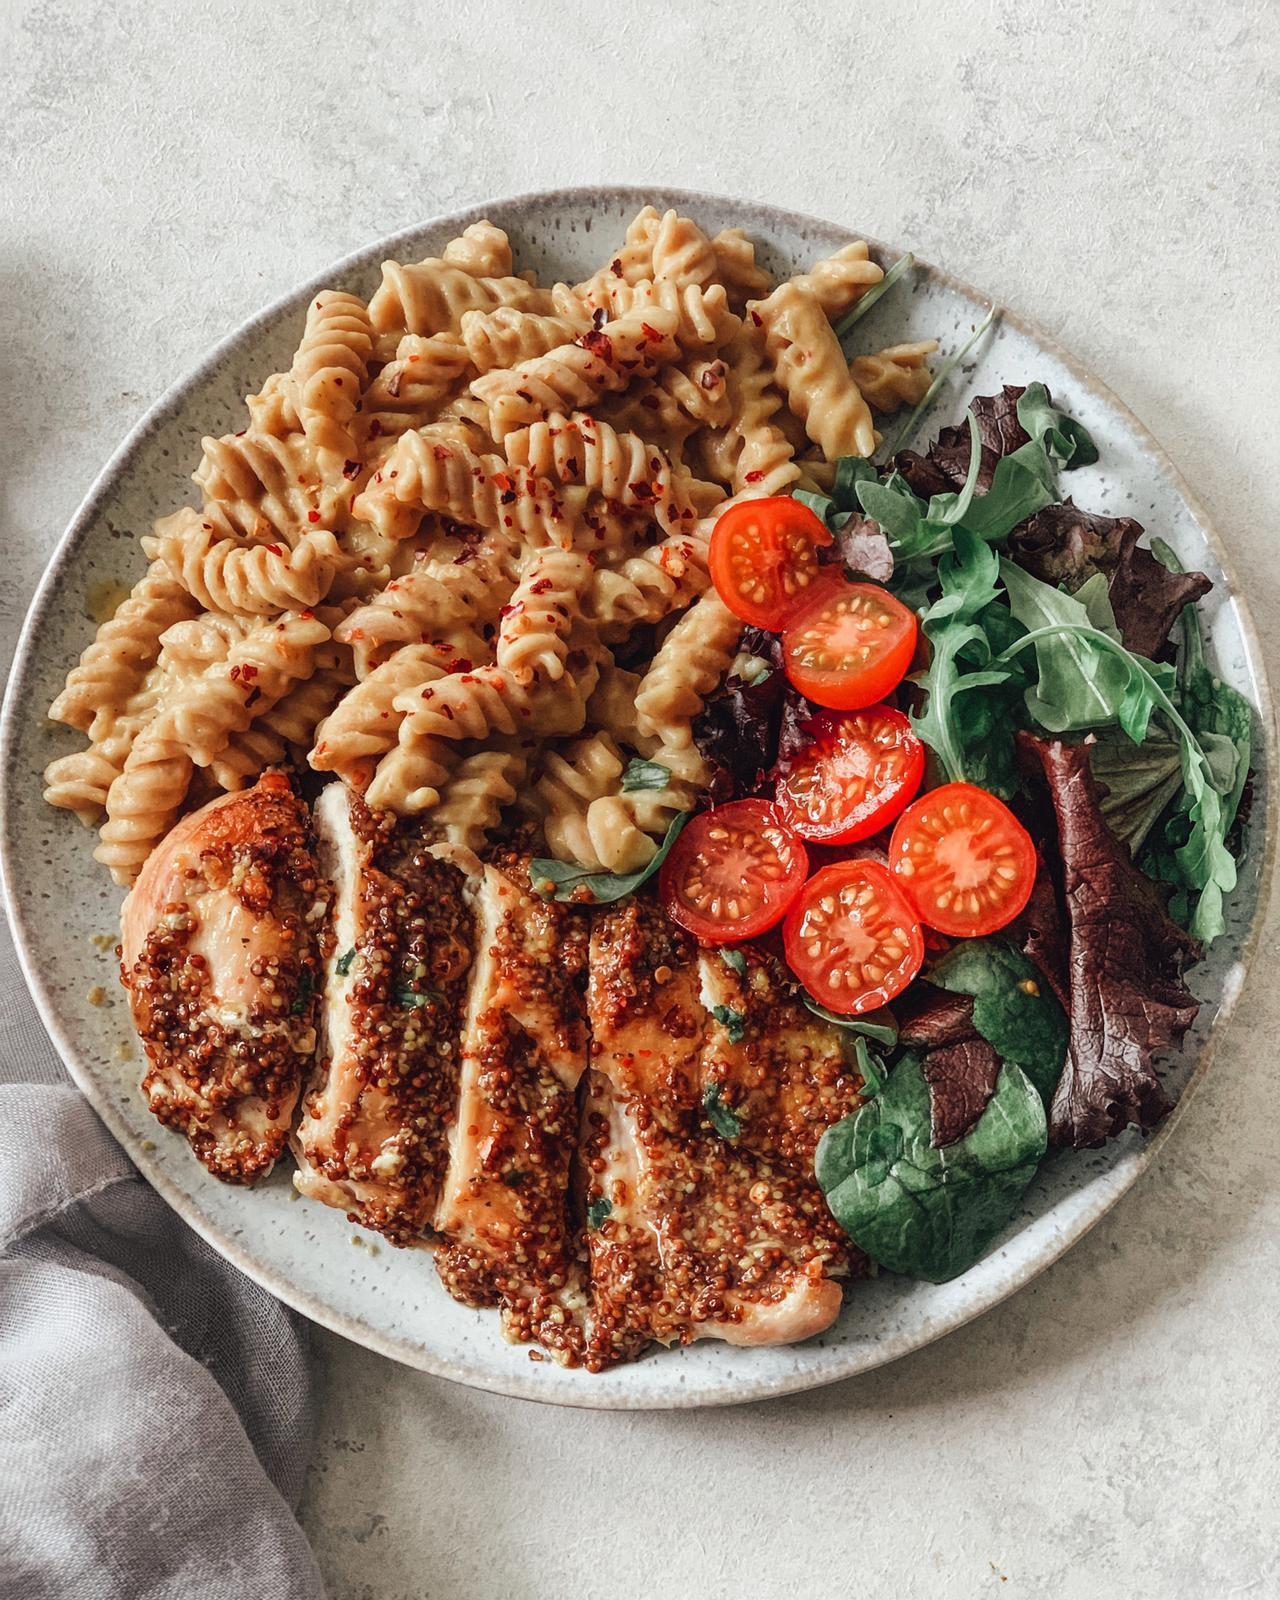 Butternut Squash Mac 'n' Cheese with Dijon Chicken Breast & Side Salad